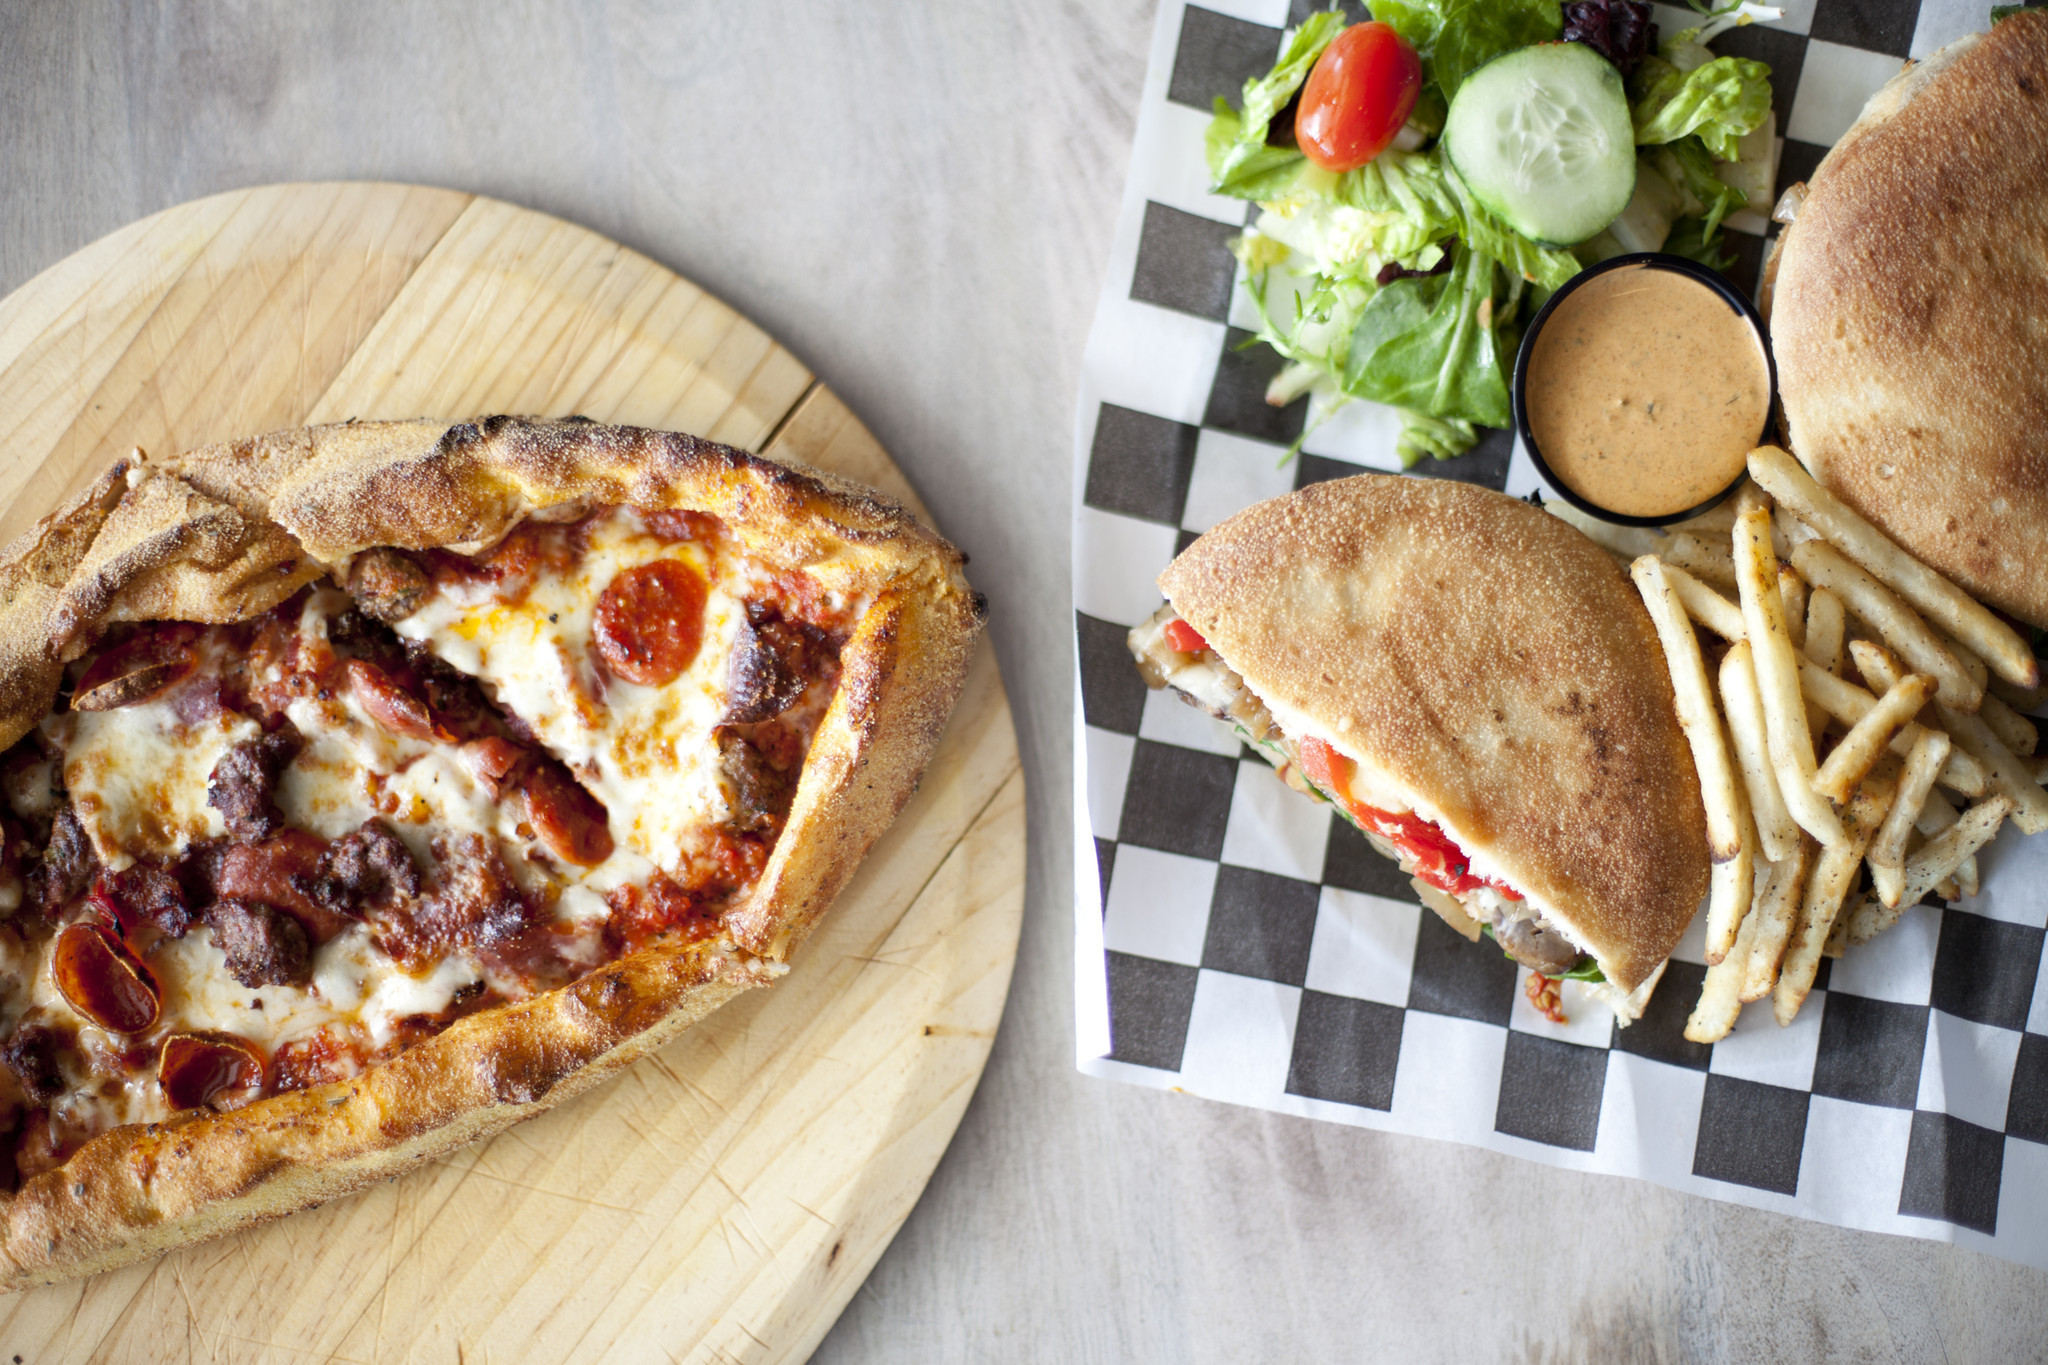 Homeslyce Brings Pizza And Mediterranean Fare To Columbia Howard County Times